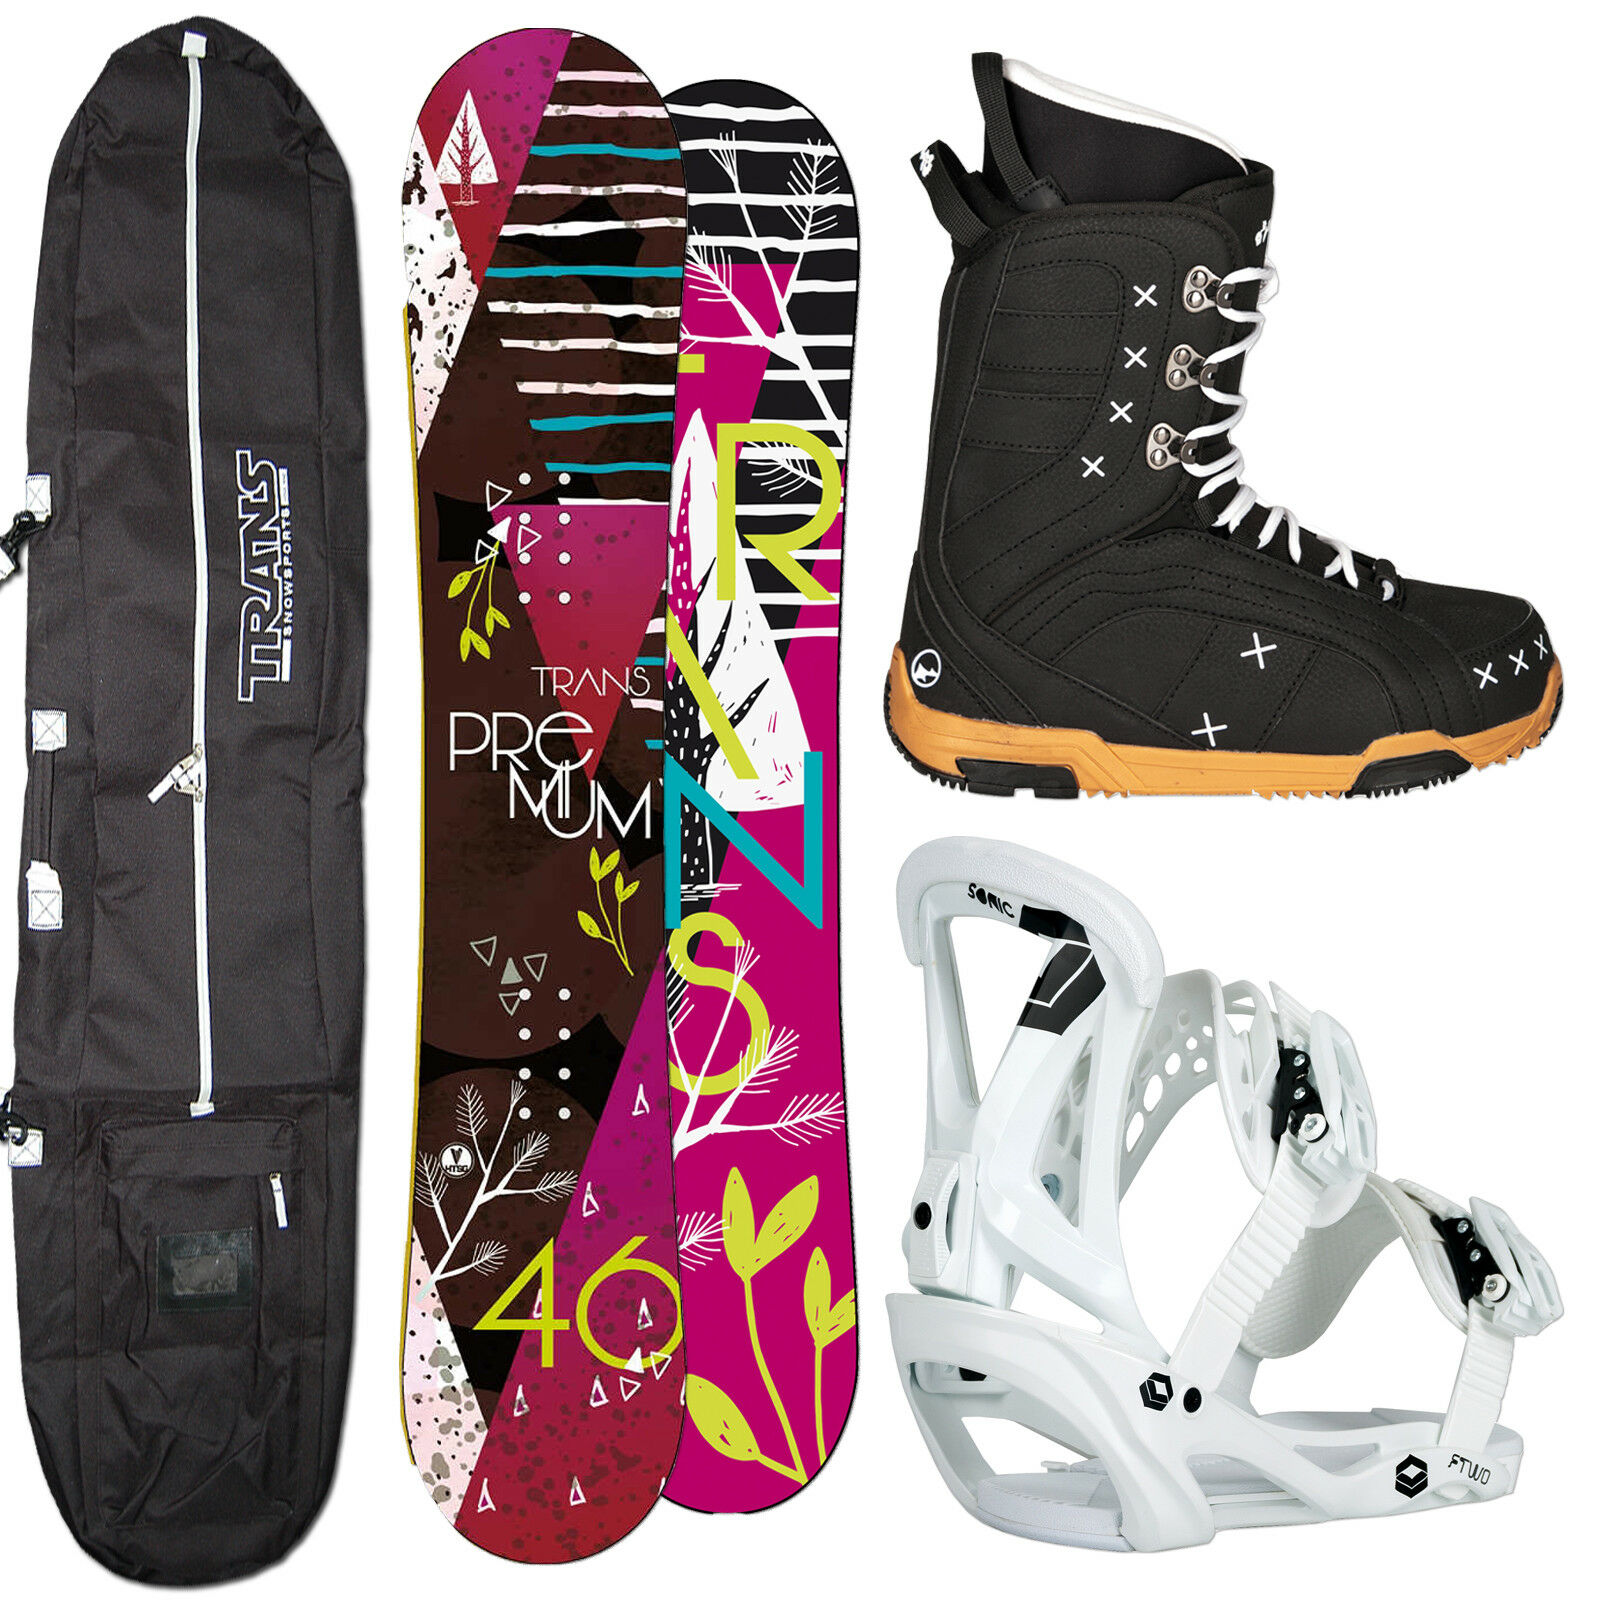 Women's Snowboard Trans Premium 155 cm Berry + Sonic Binding SIZE M + Boots+ Bag